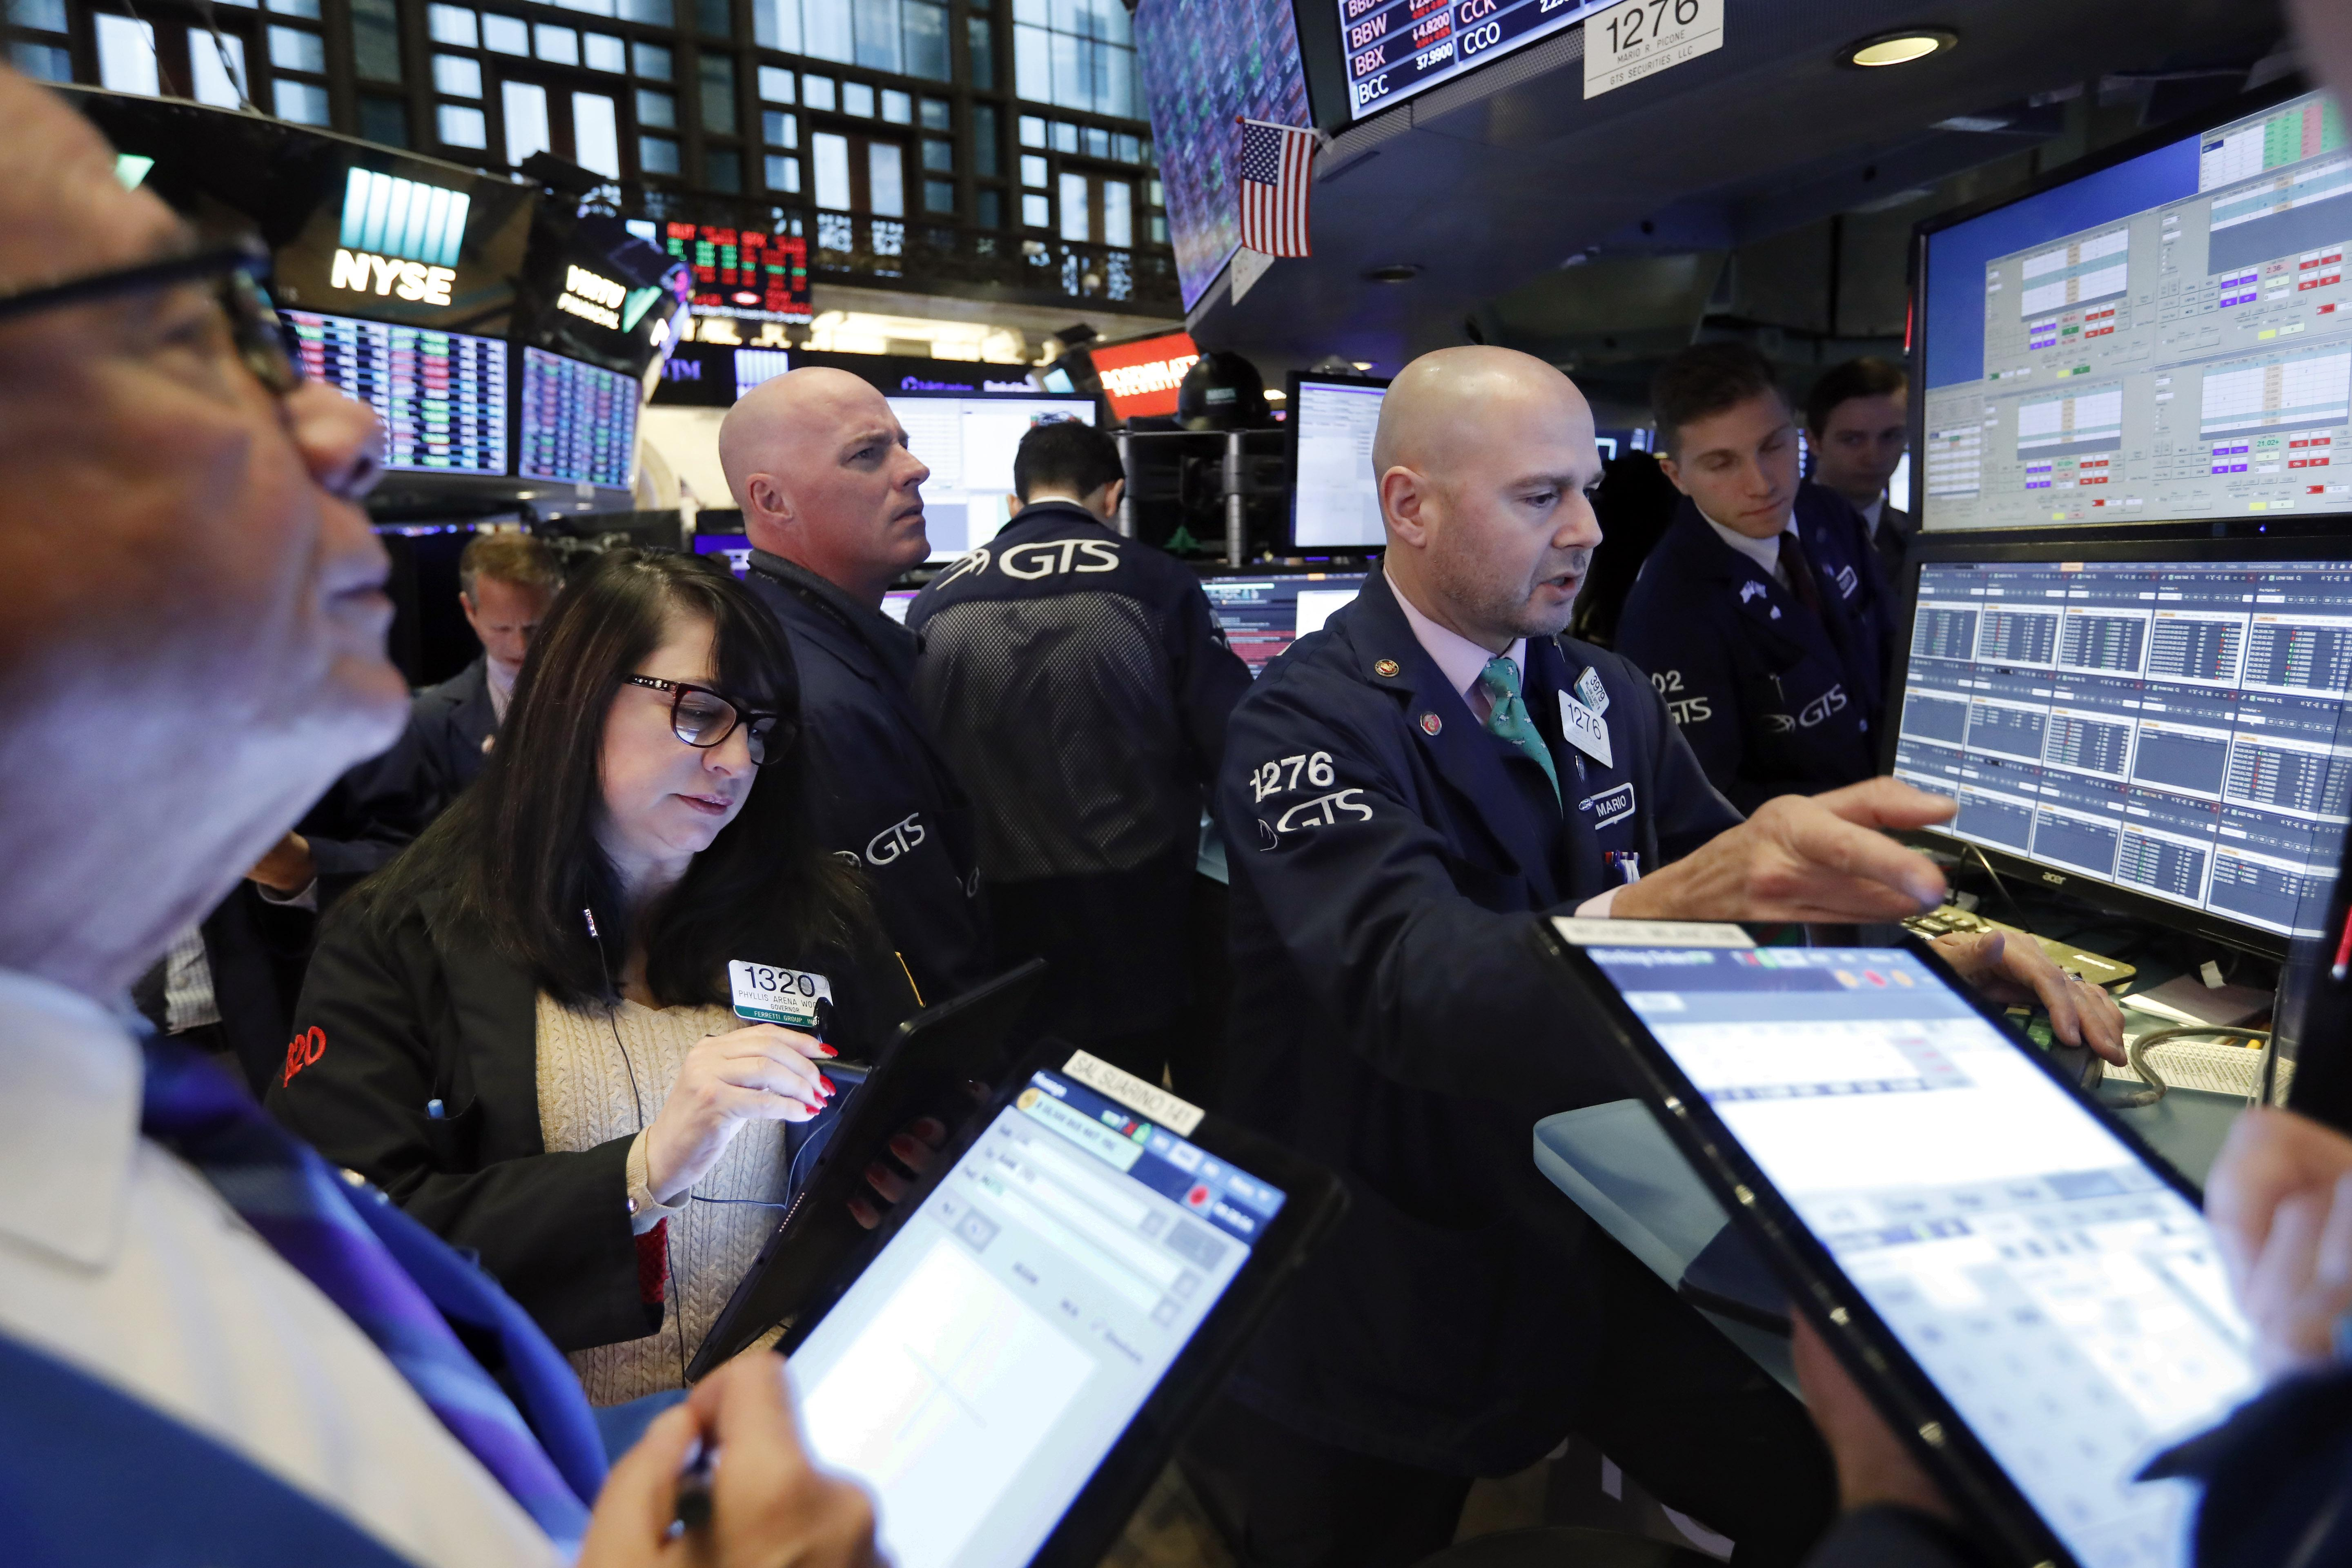 United States stocks end higher amid trade hopes